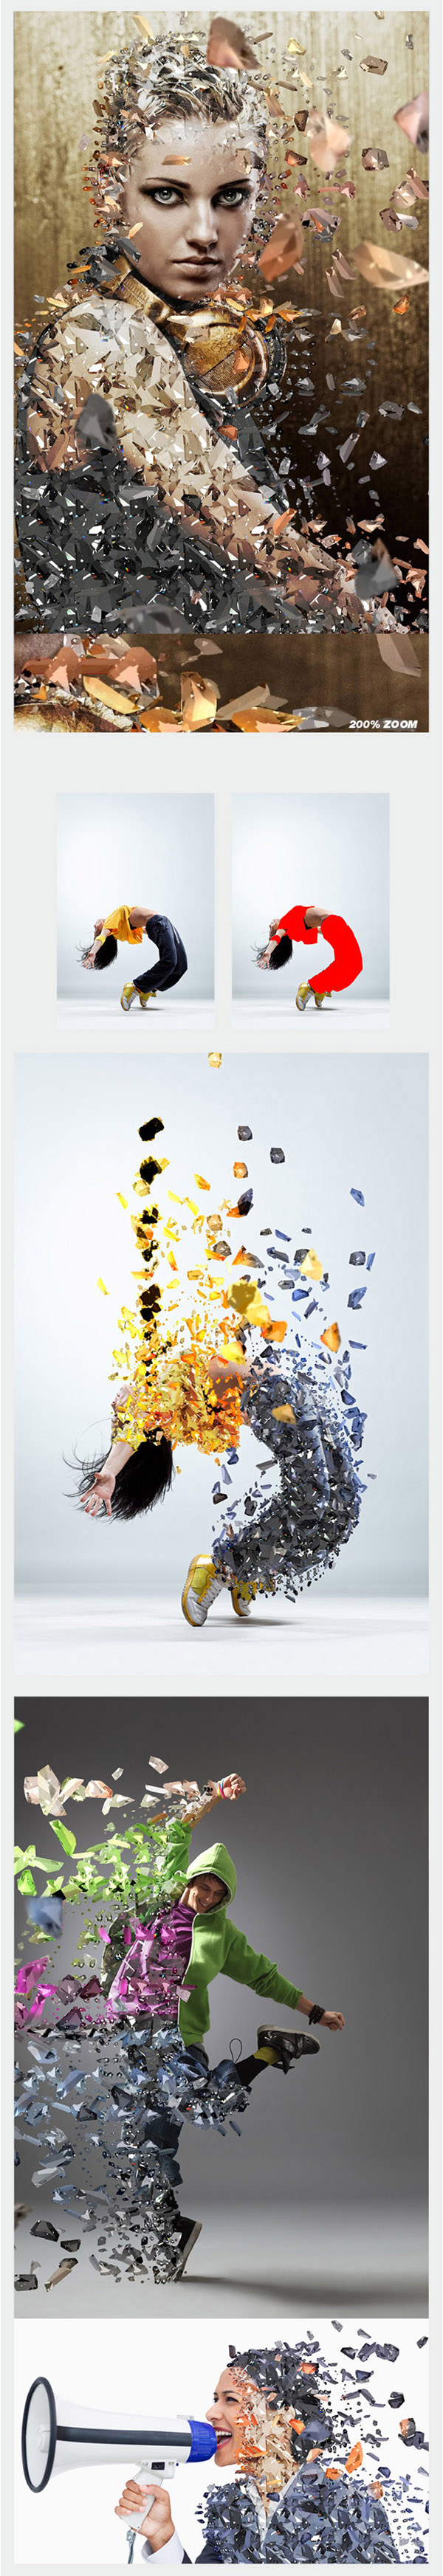 04 Crystal Dispersion PS Action